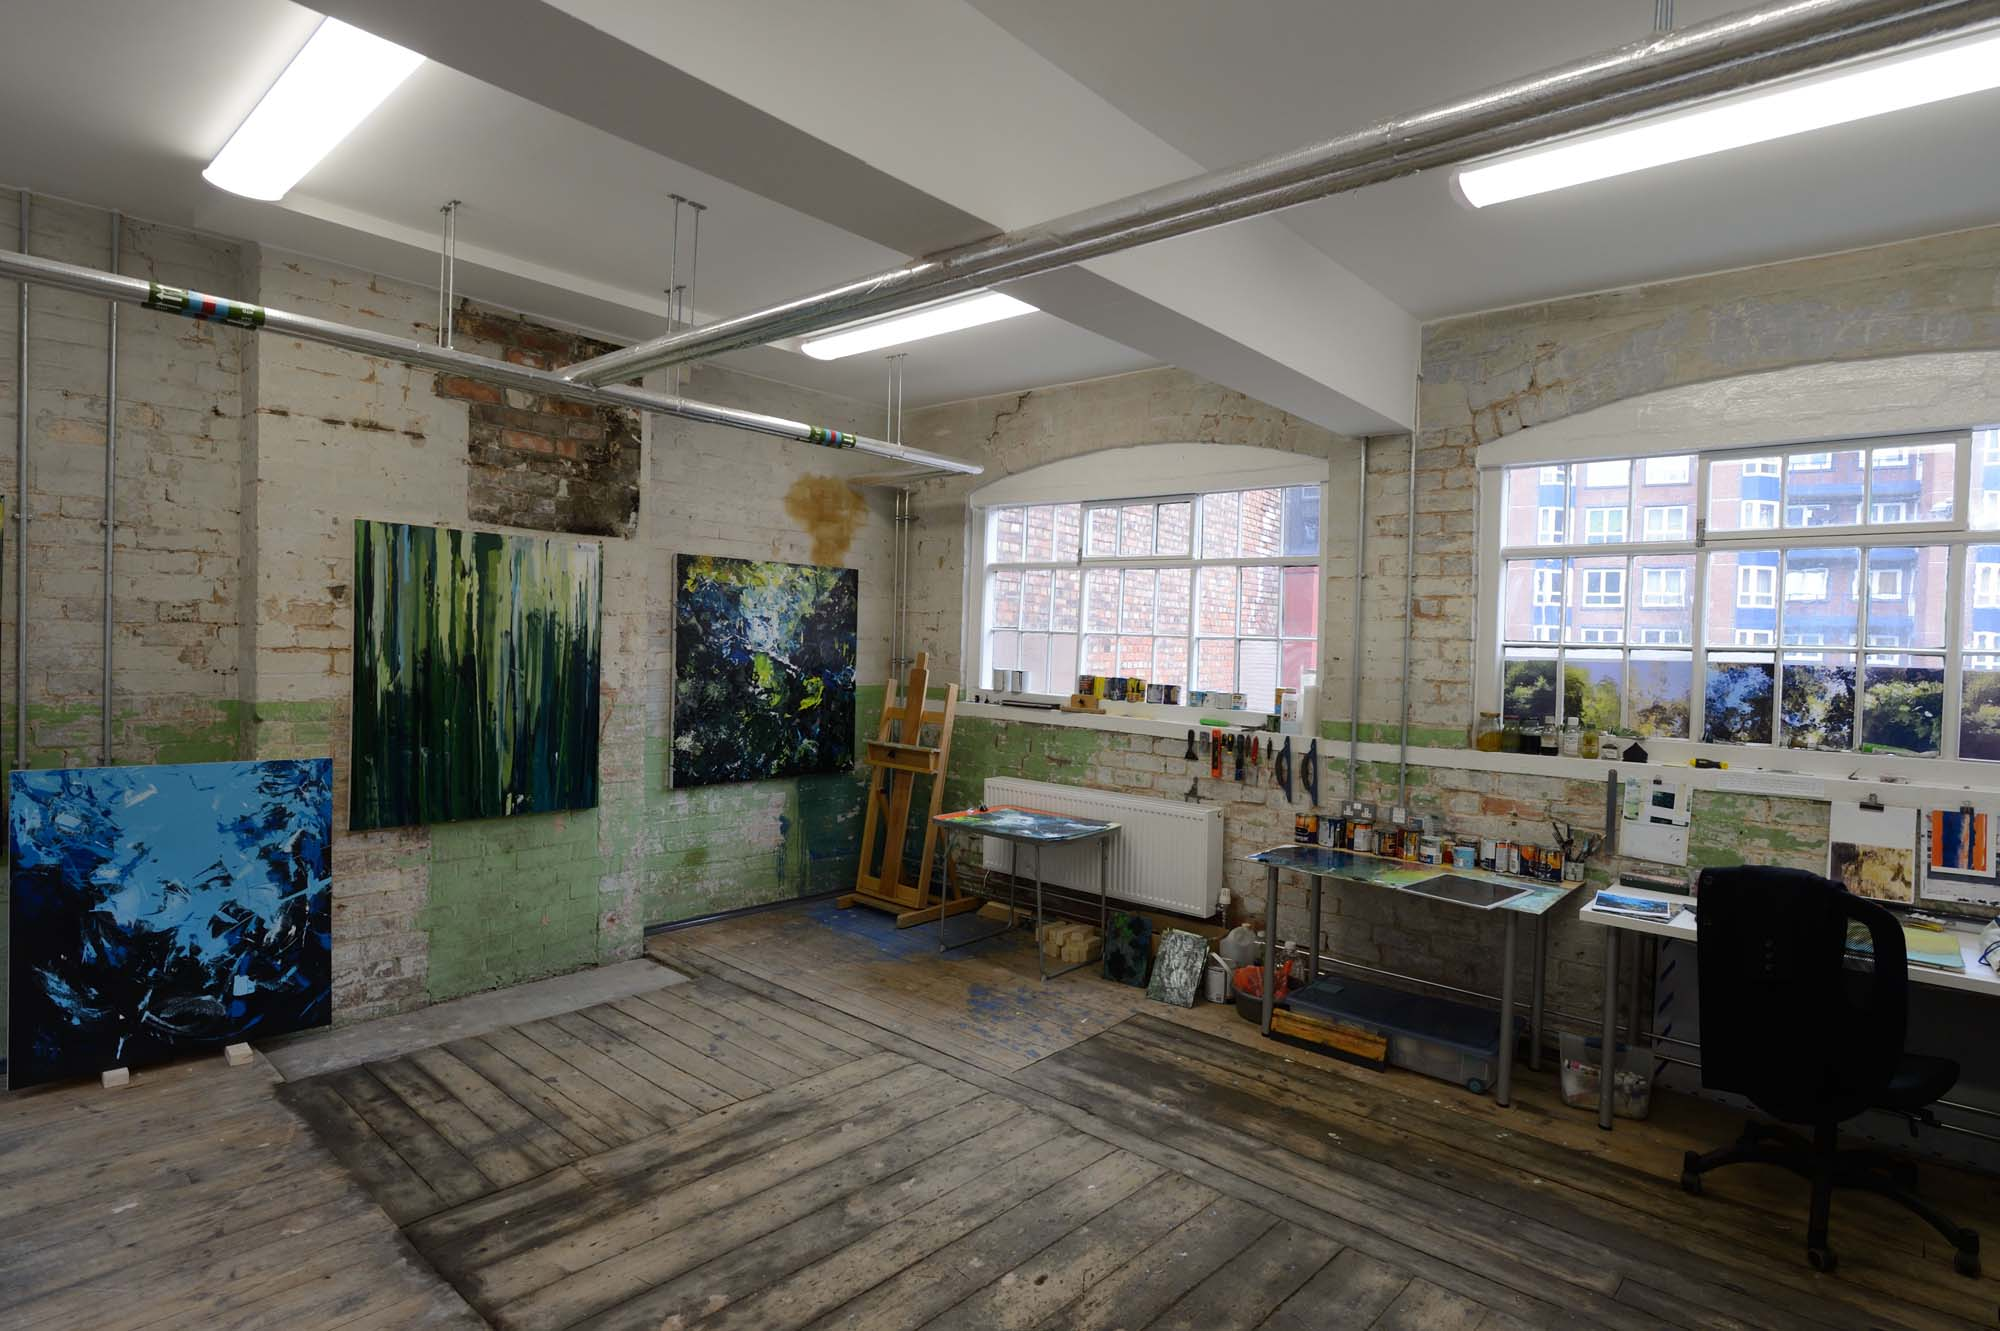 An artist's studio space - Makers Yard